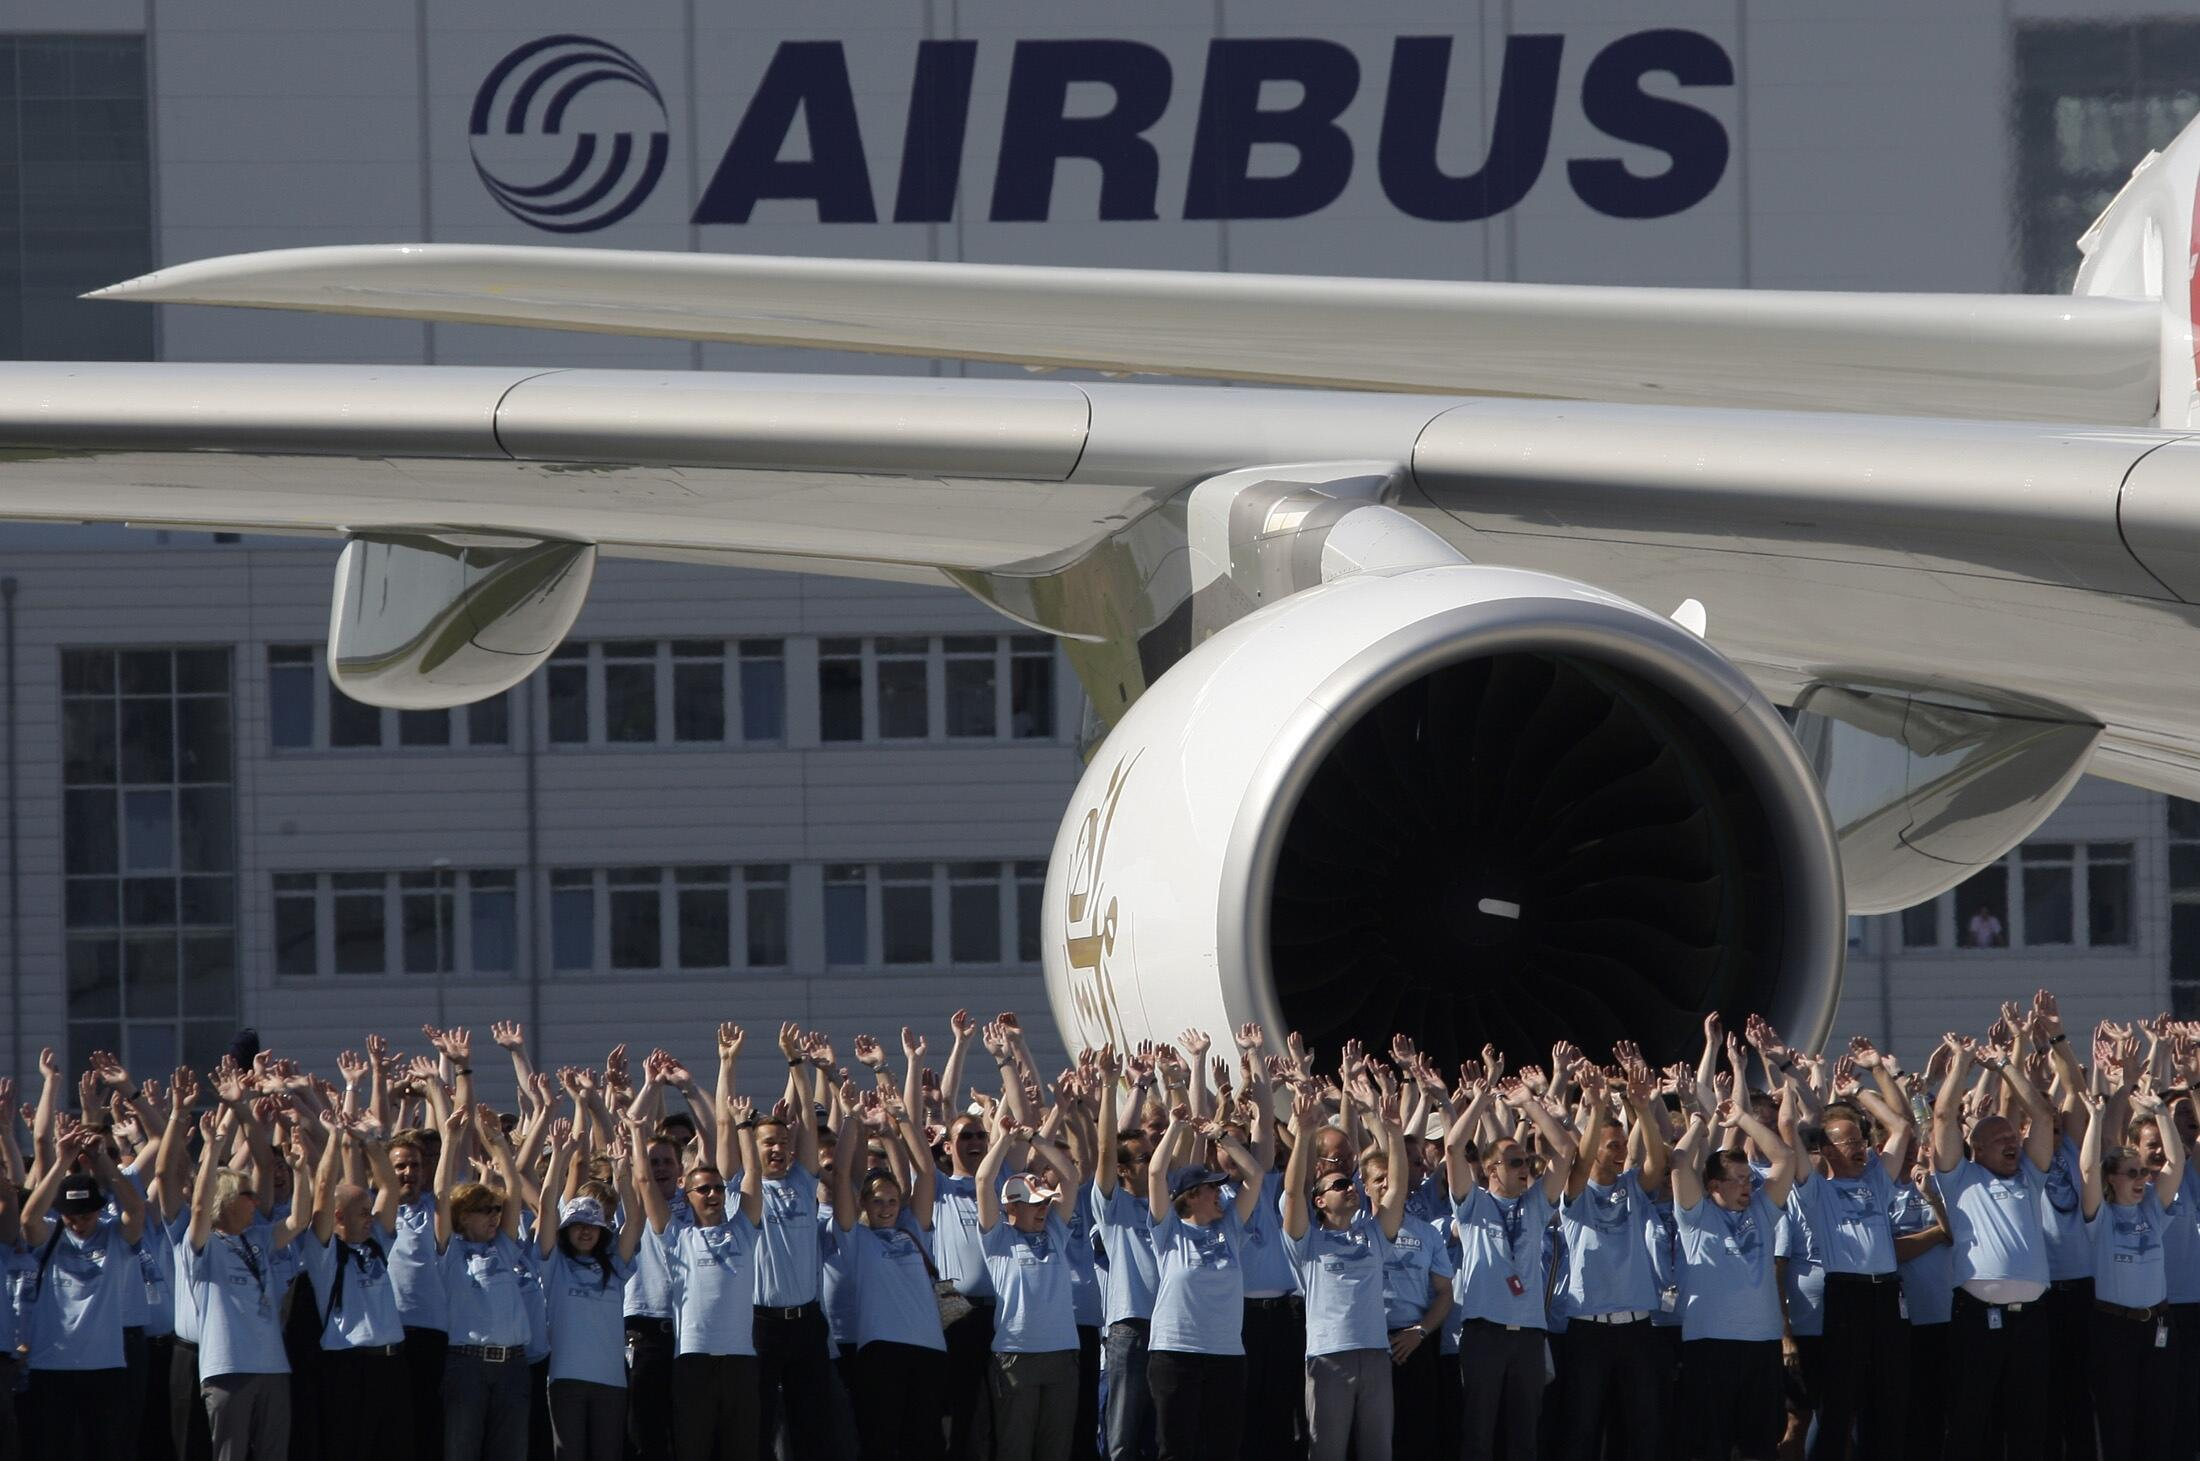 Airbus employees at a handover ceremony in Hamburg, Germany, in 2008